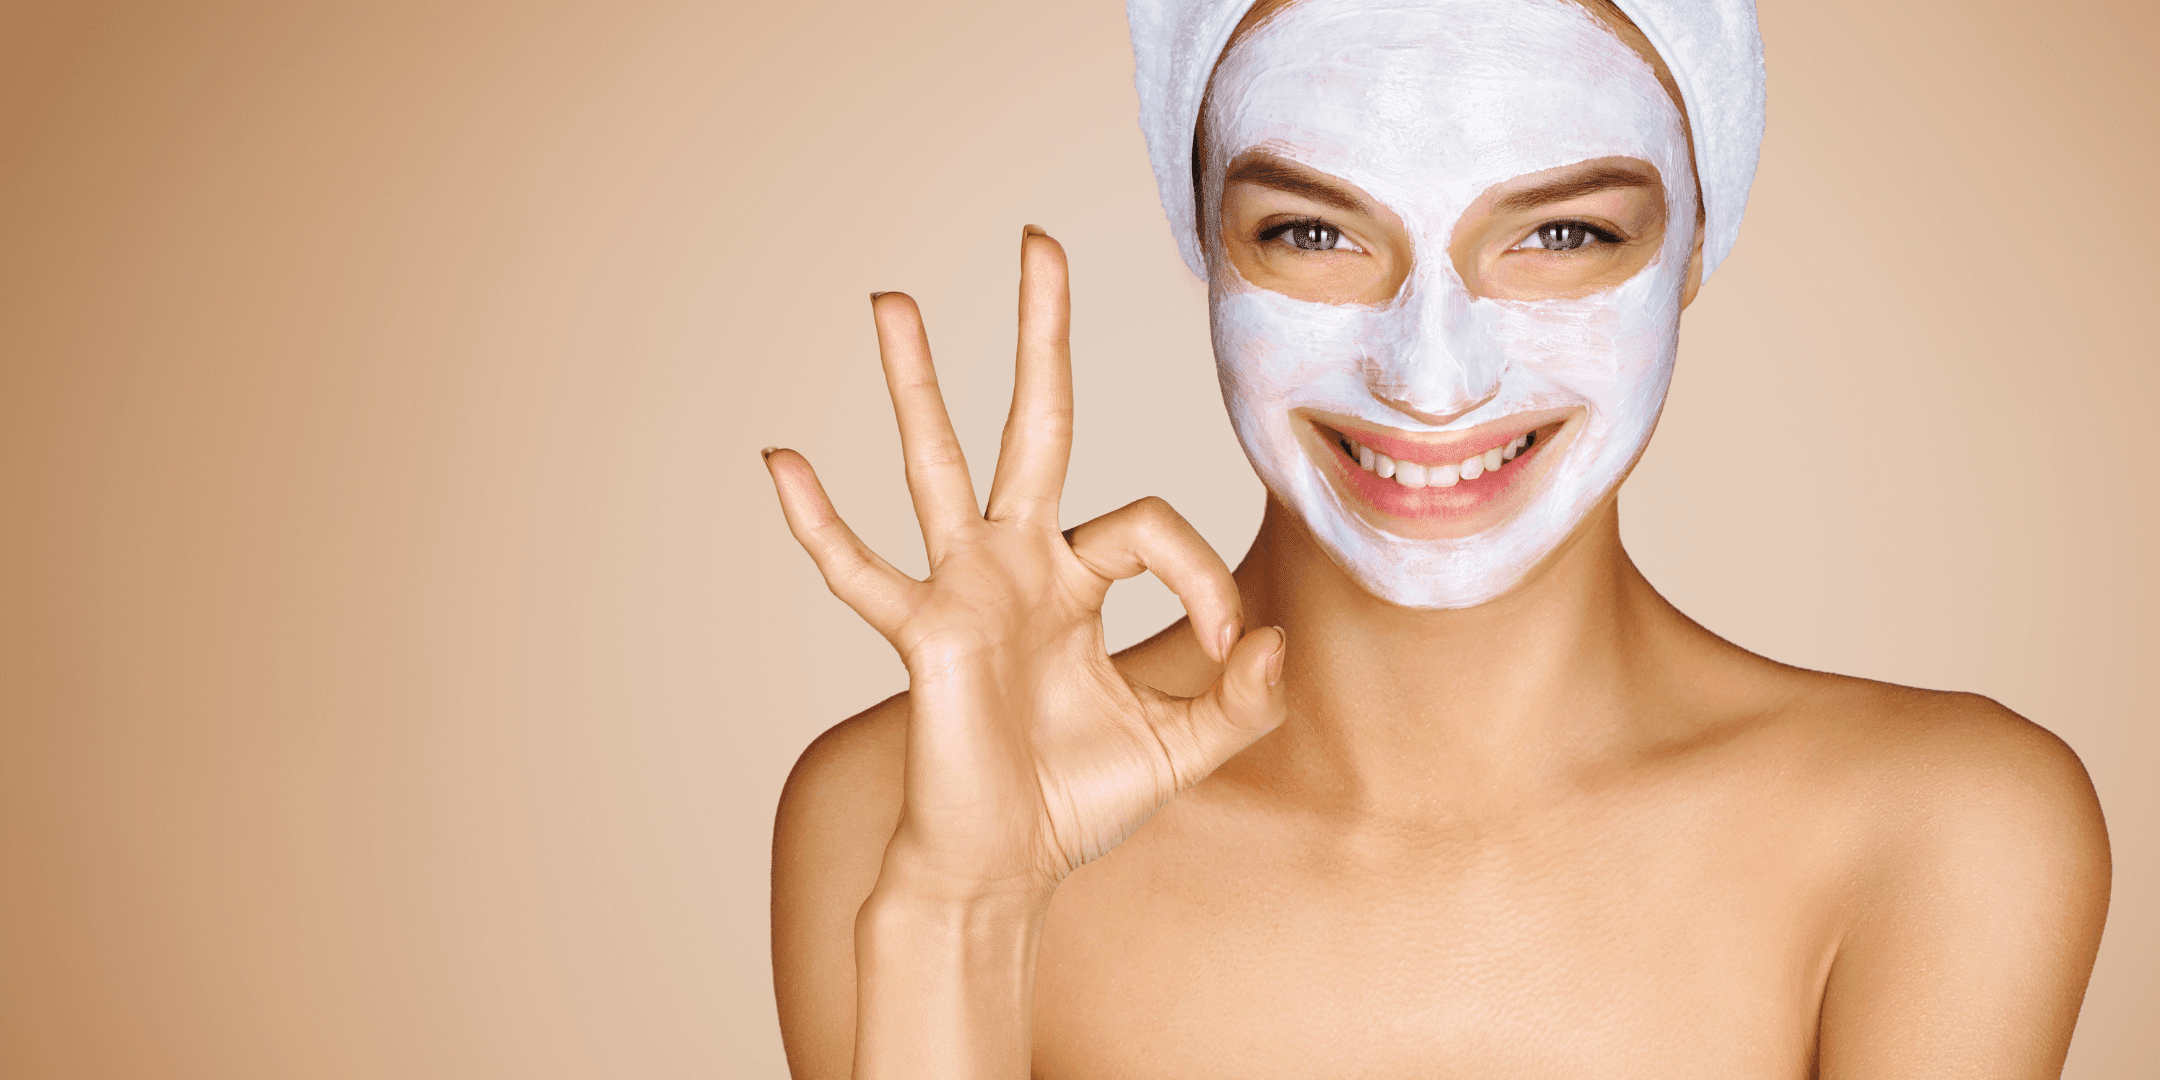 The Beginners Guide To Healthy, Glowing Skin By Barbies Beauty Bits